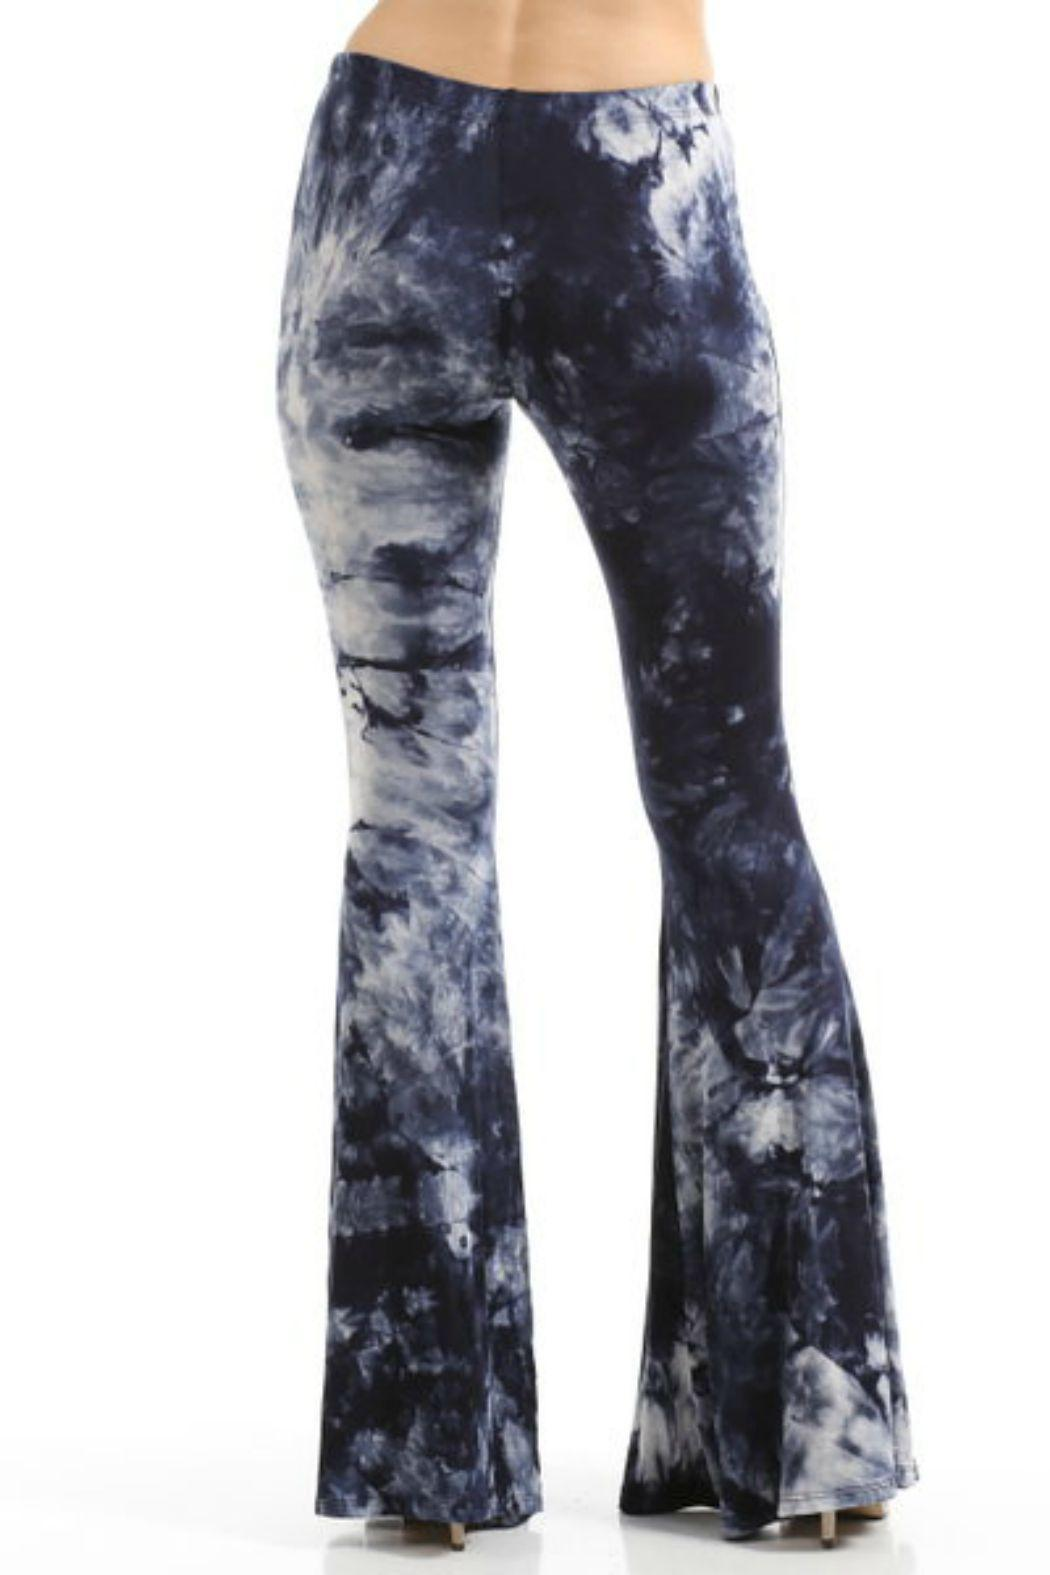 Ombre Flare Pants From Laredo By Dollz Boutique Shoptiques